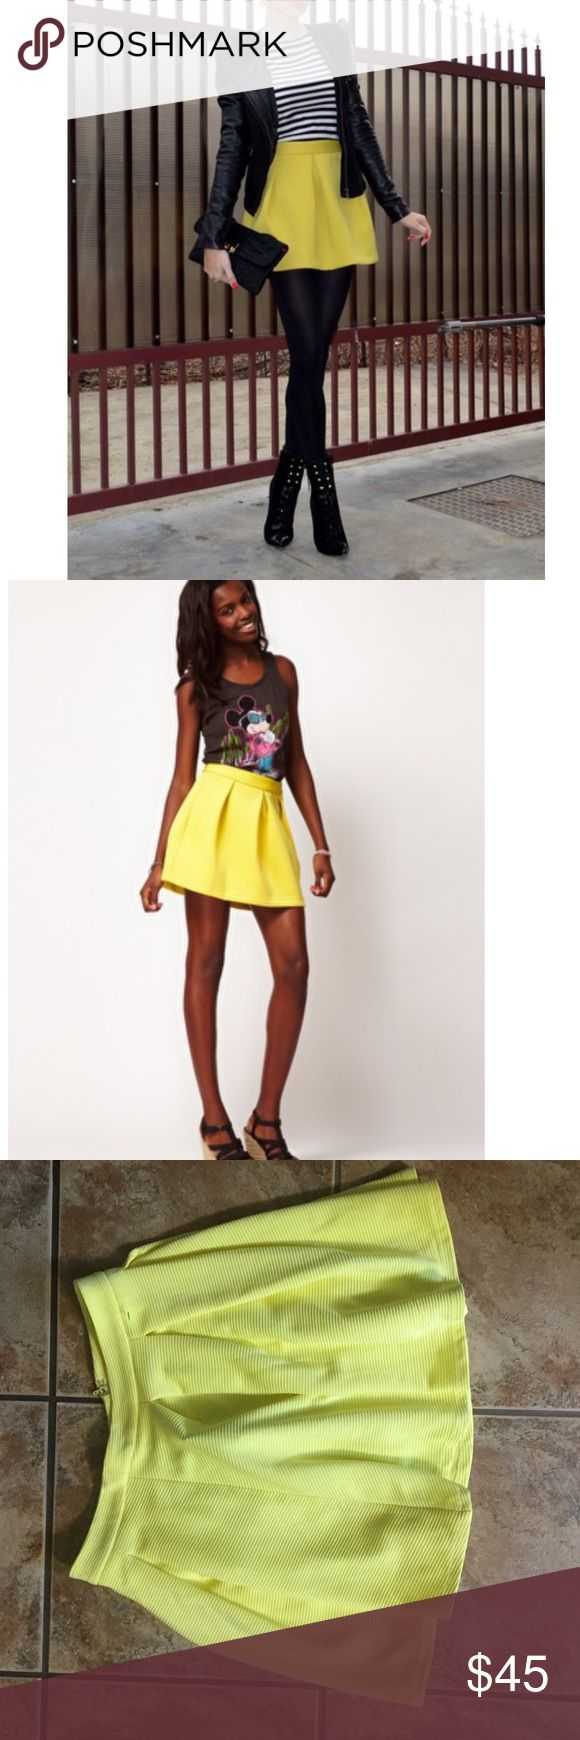 NWT Asos Yellow Skater Skirt New with tags asos yellow ribbed skater skirt ASOS Skirts Circle & Skater